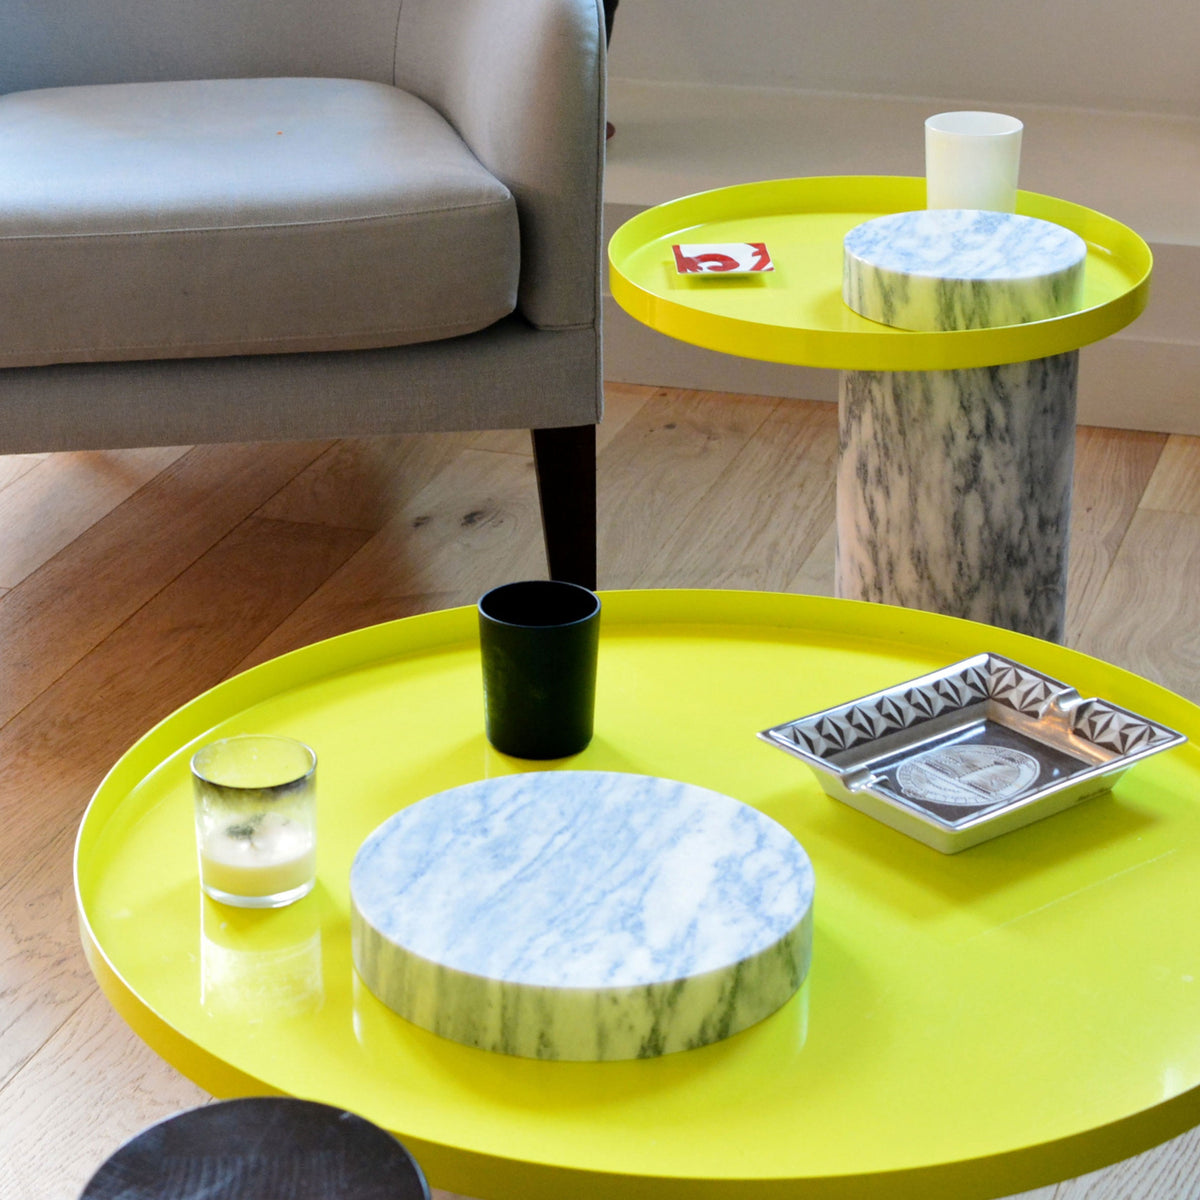 Salute Coffee Table - White Marble Column & Yellow Tray - Monologue London